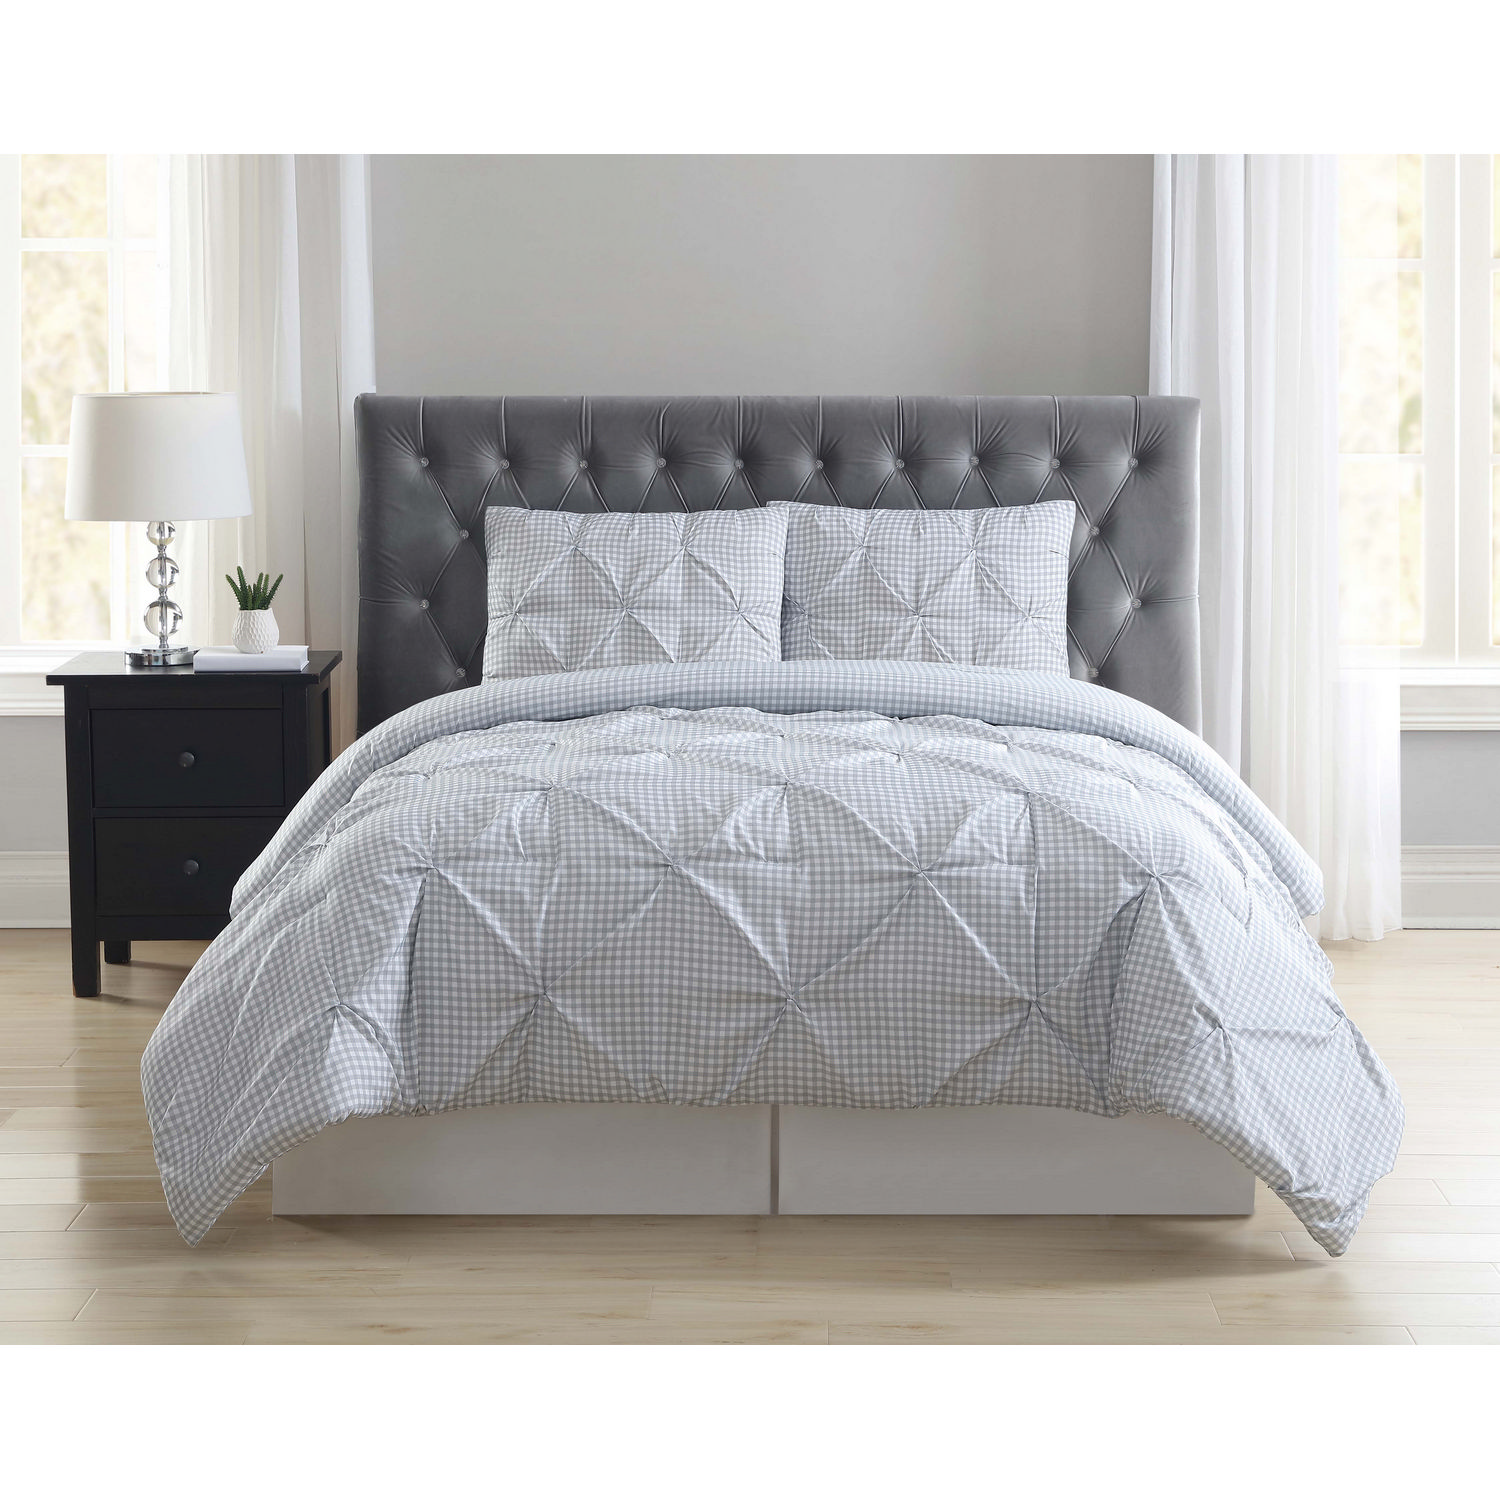 Truly Soft Everyday Gingham Pleat Grey Twin Extra Long Comforter Set